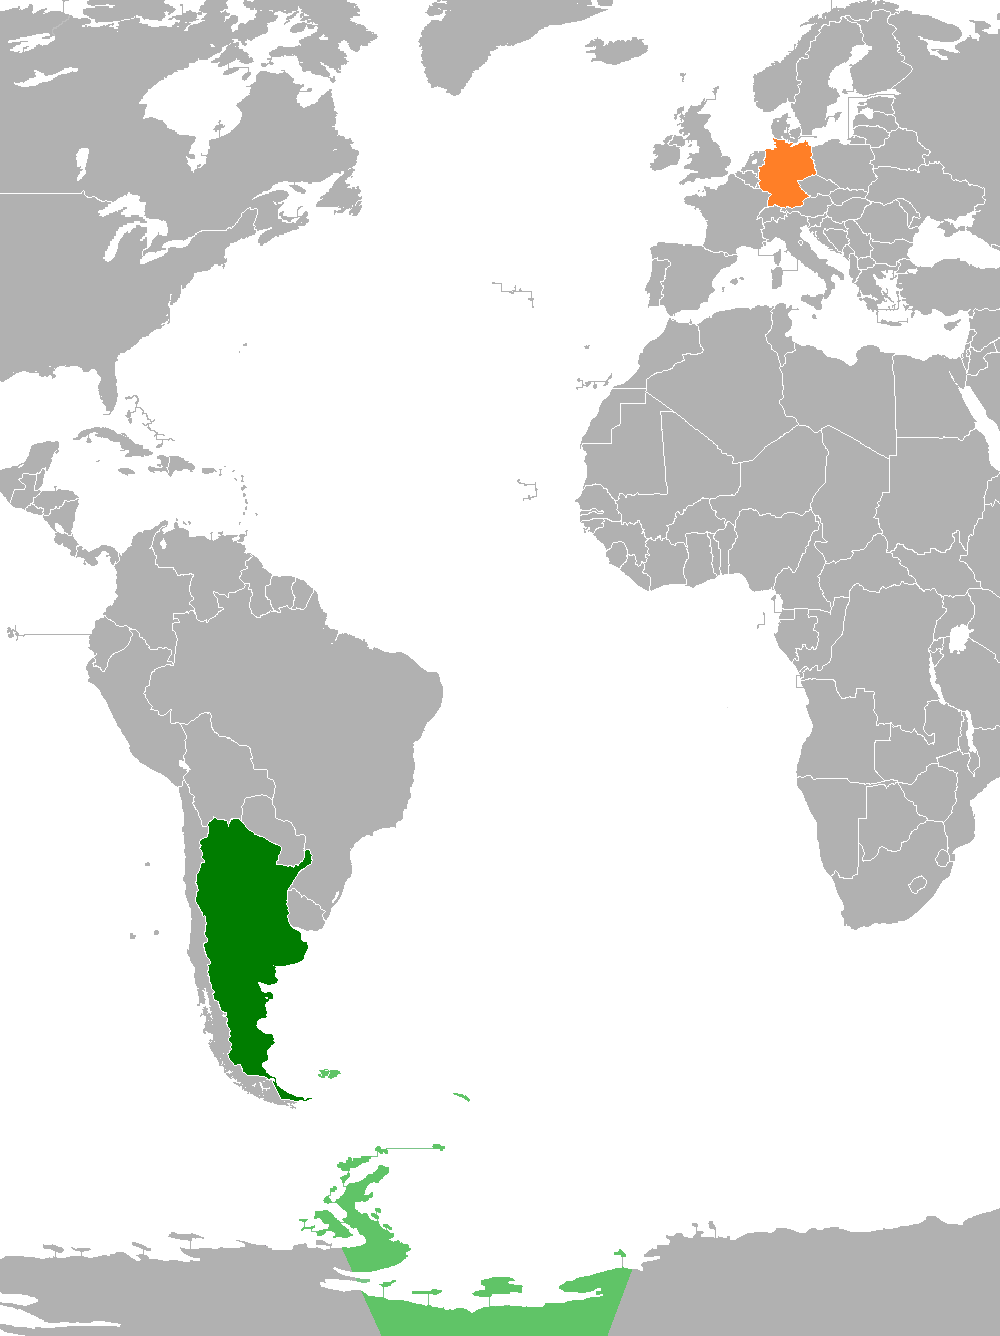 ArgentinaGermany Relations Wikipedia - Misiones argentina nazi map